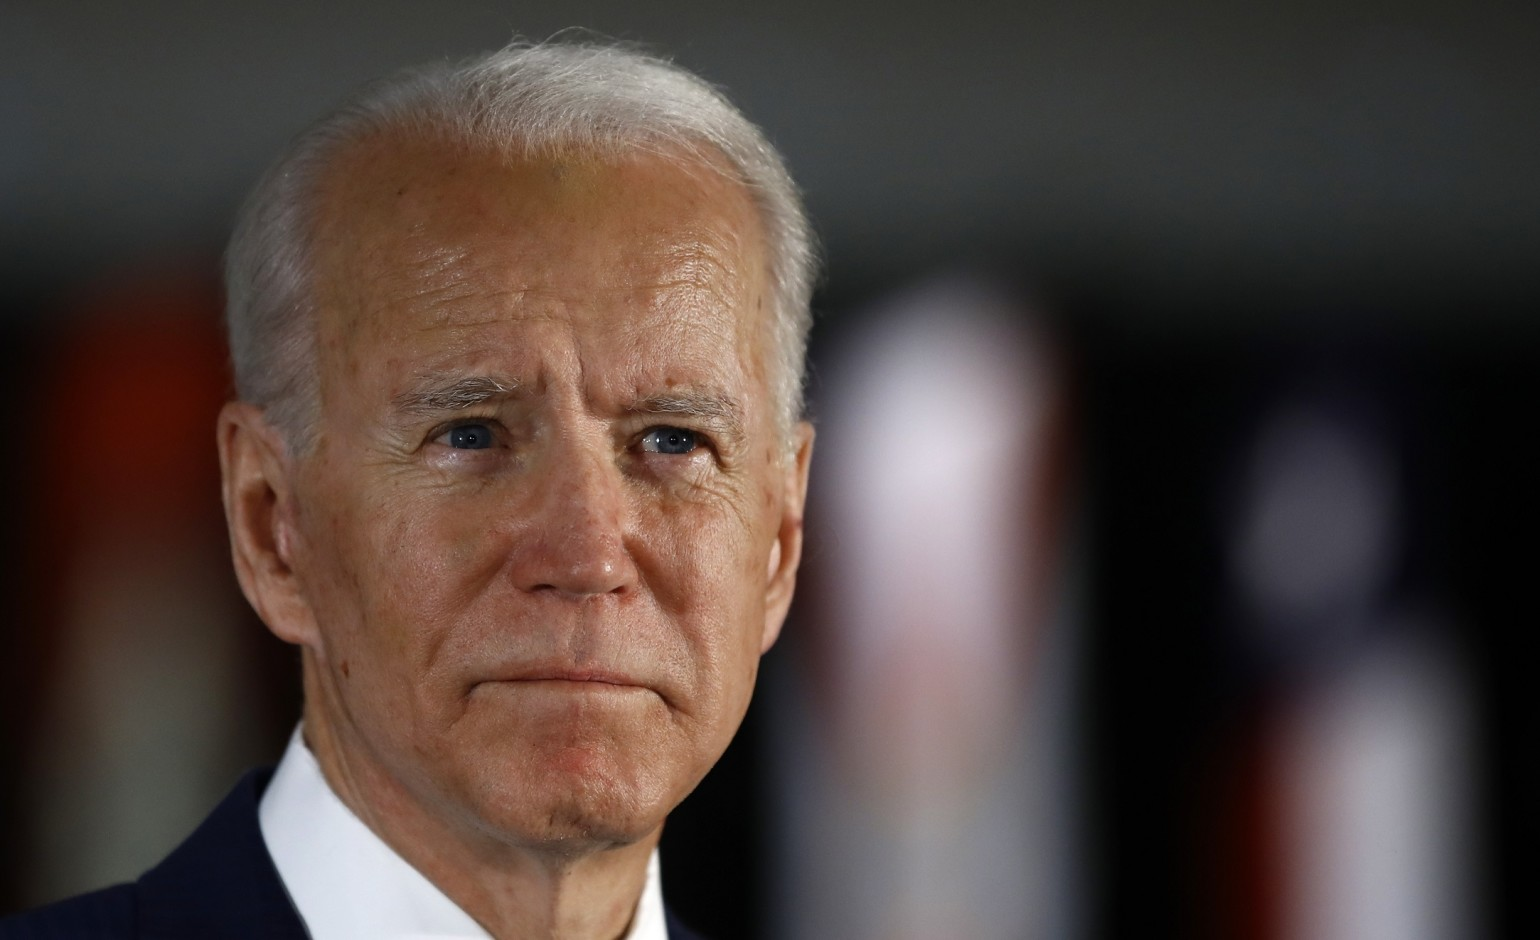 Biden denies sexual assault claims, White House weighs in